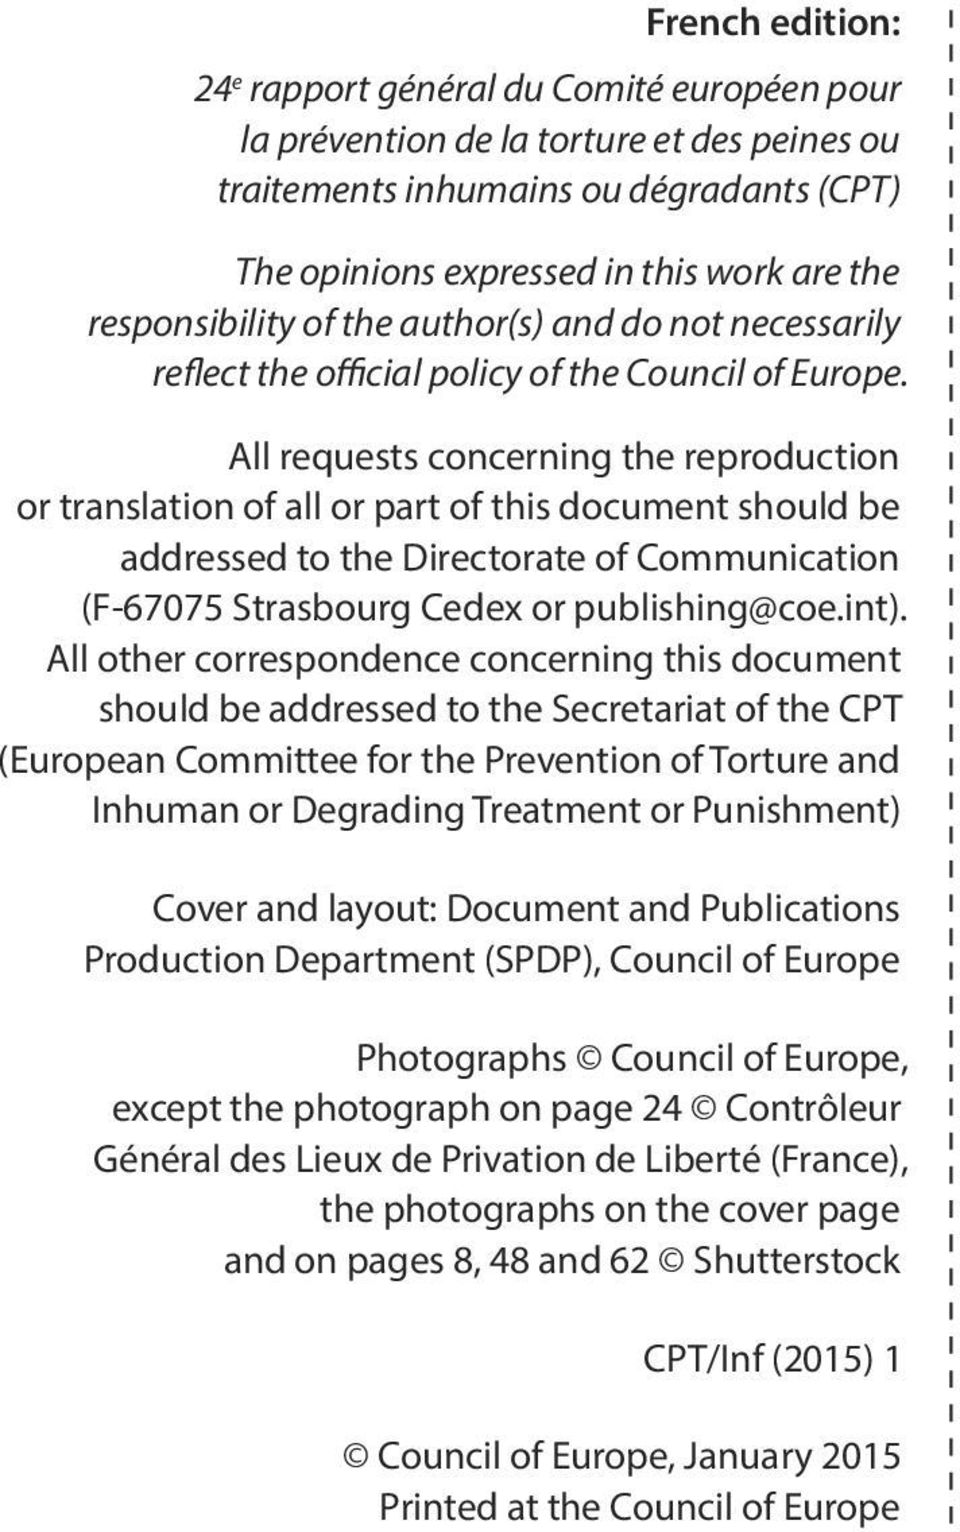 All requests concerning the reproduction or translation of all or part of this document should be addressed to the Directorate of Communication (F-67075 Strasbourg Cedex or publishing@coe.int).